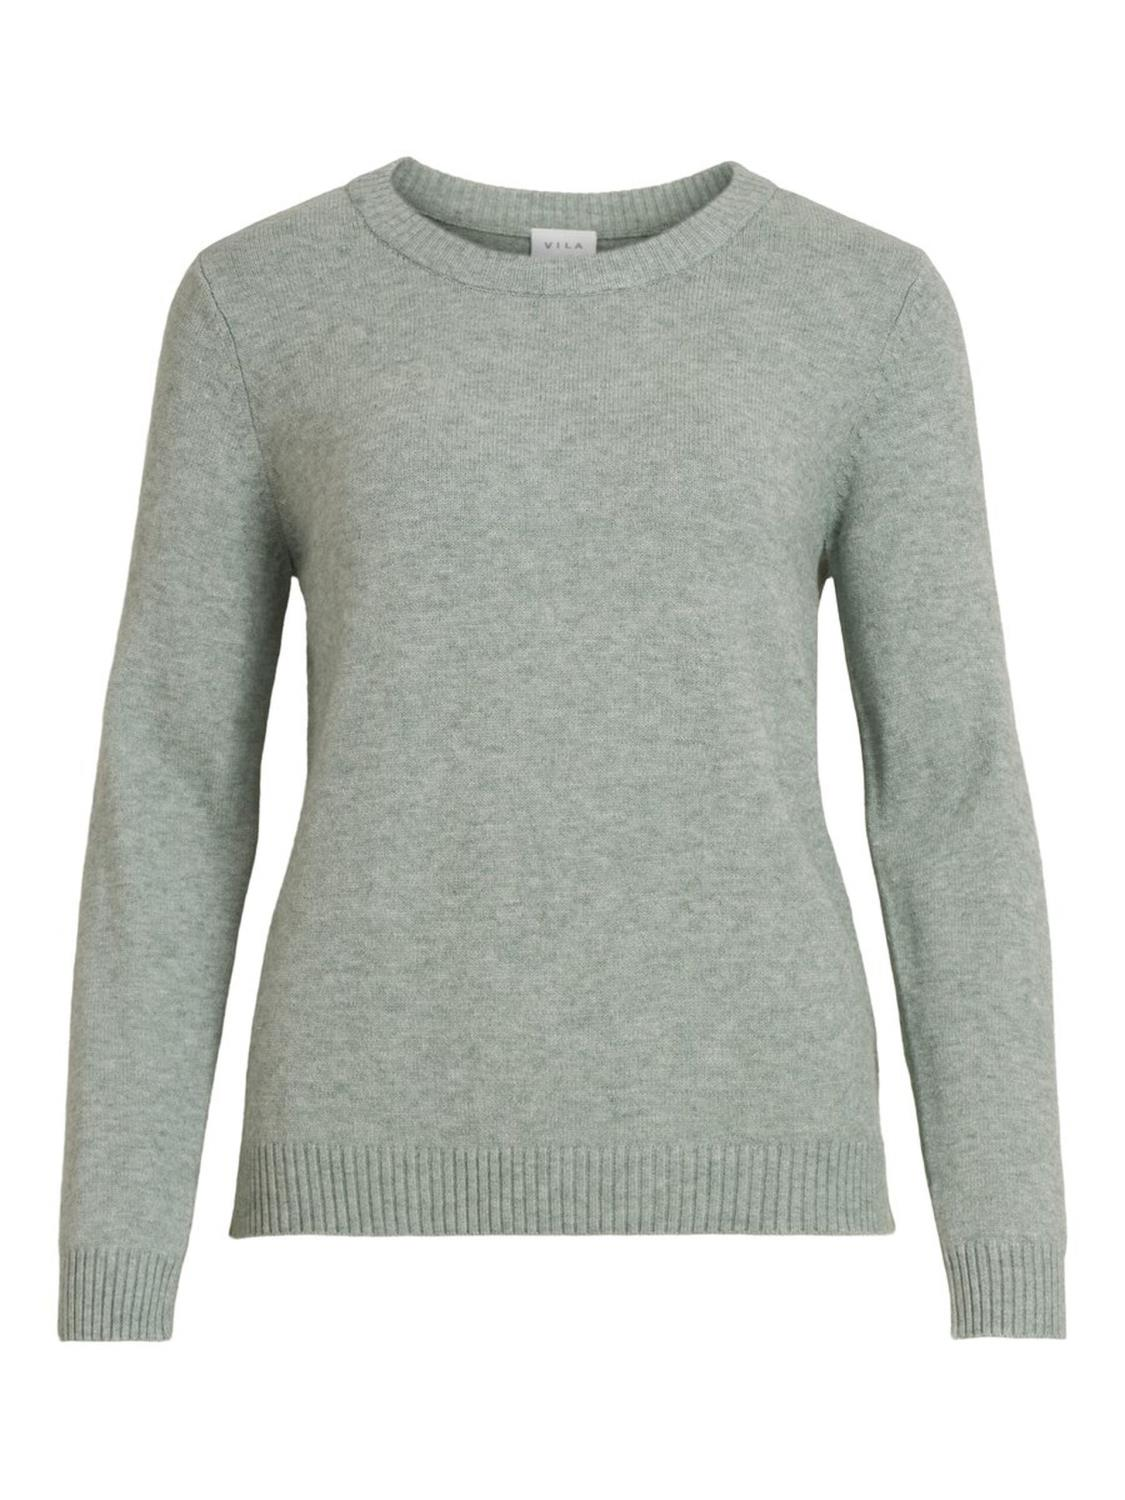 VILA Viril O-neck, knit top, grønn melert